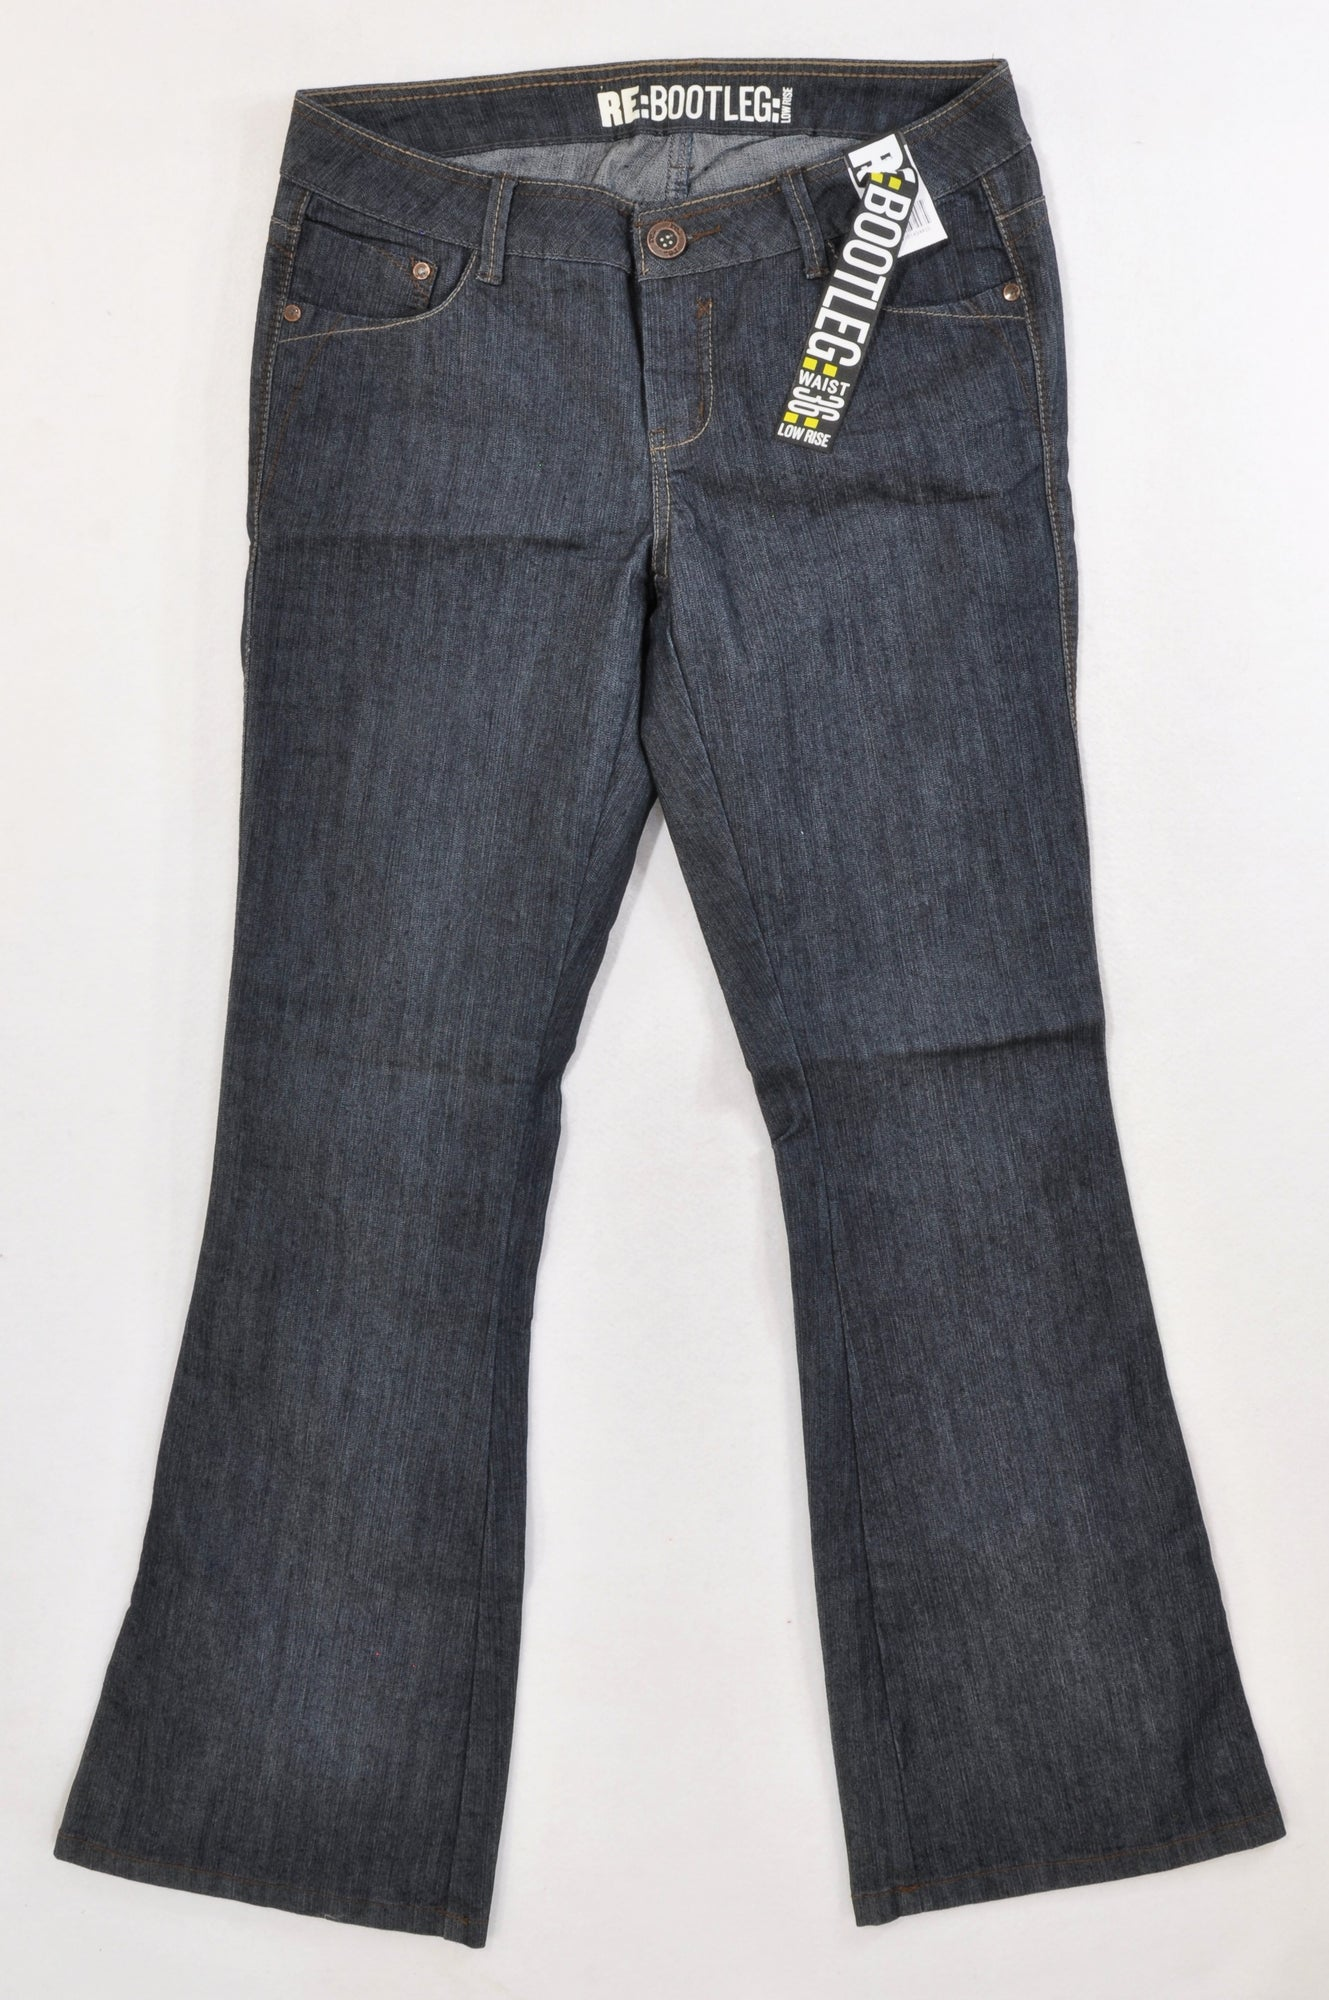 New Woolworths Dark Wash Bootleg Low Rise Jeans Women Size 36